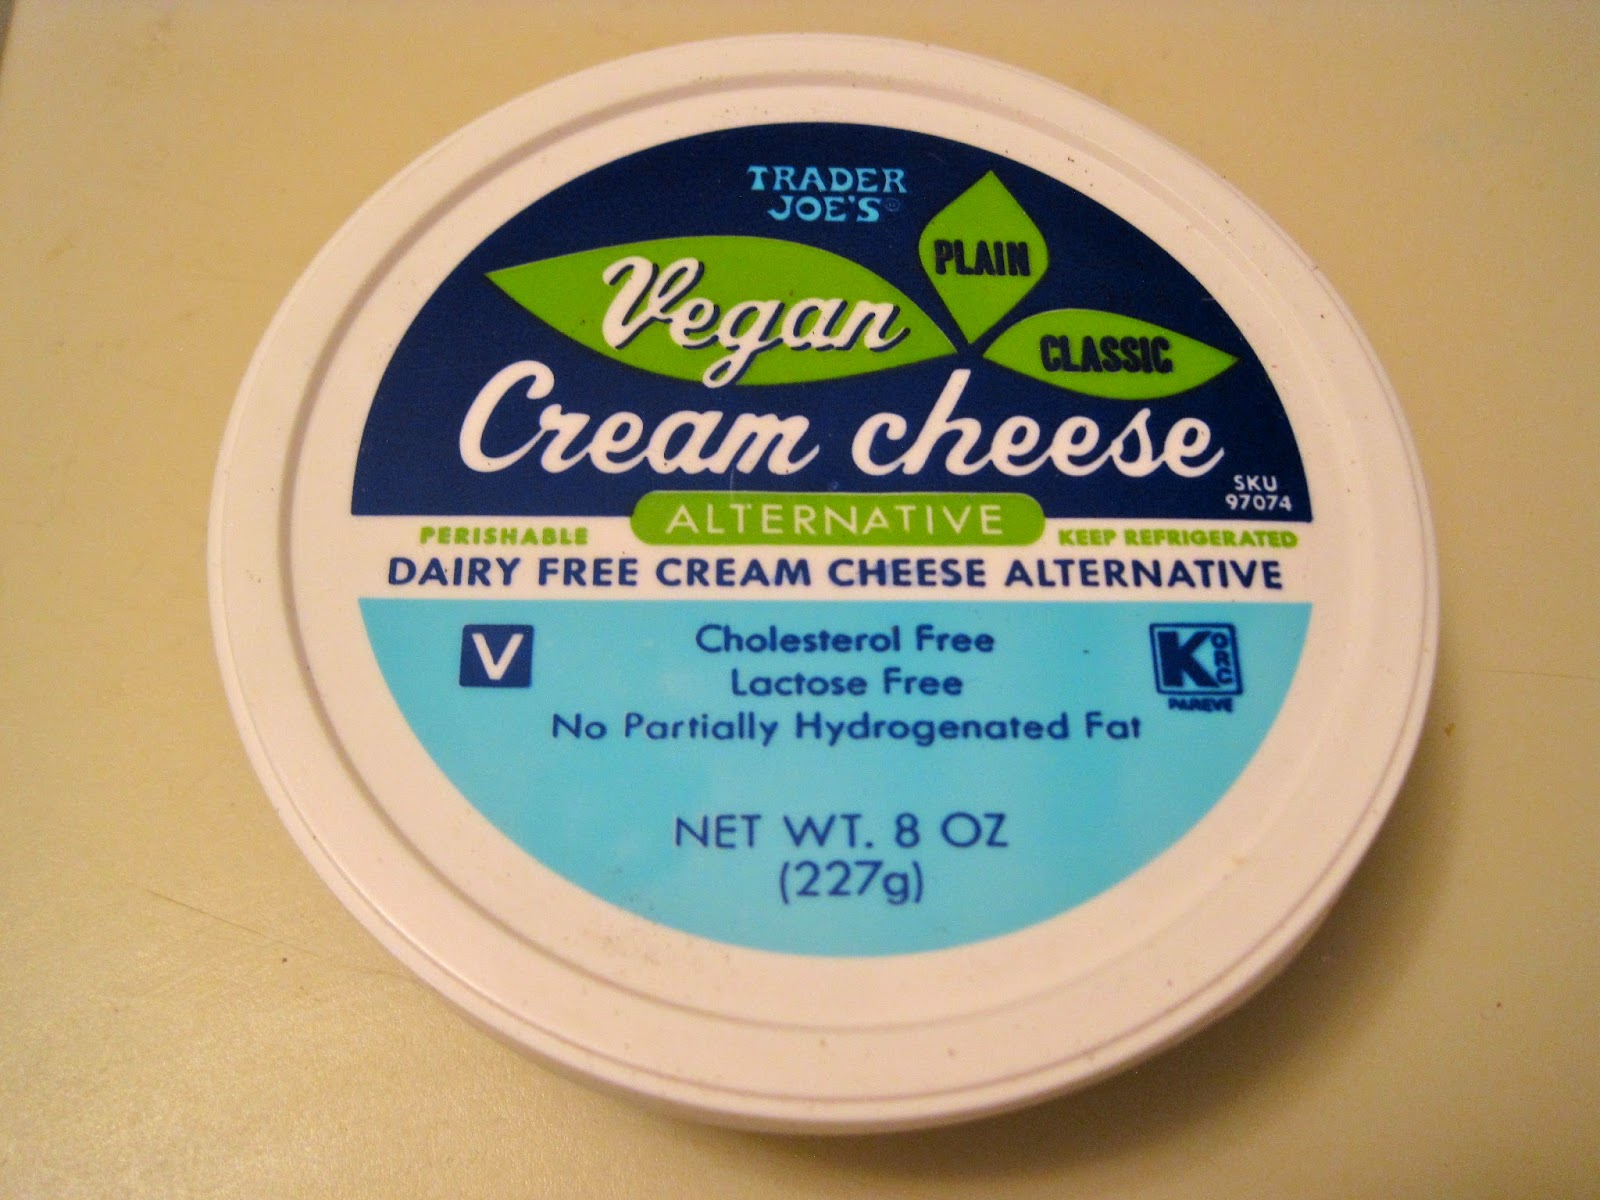 Vegan Cream Cheese - Trader Joe's from Veega - Vegan Blog